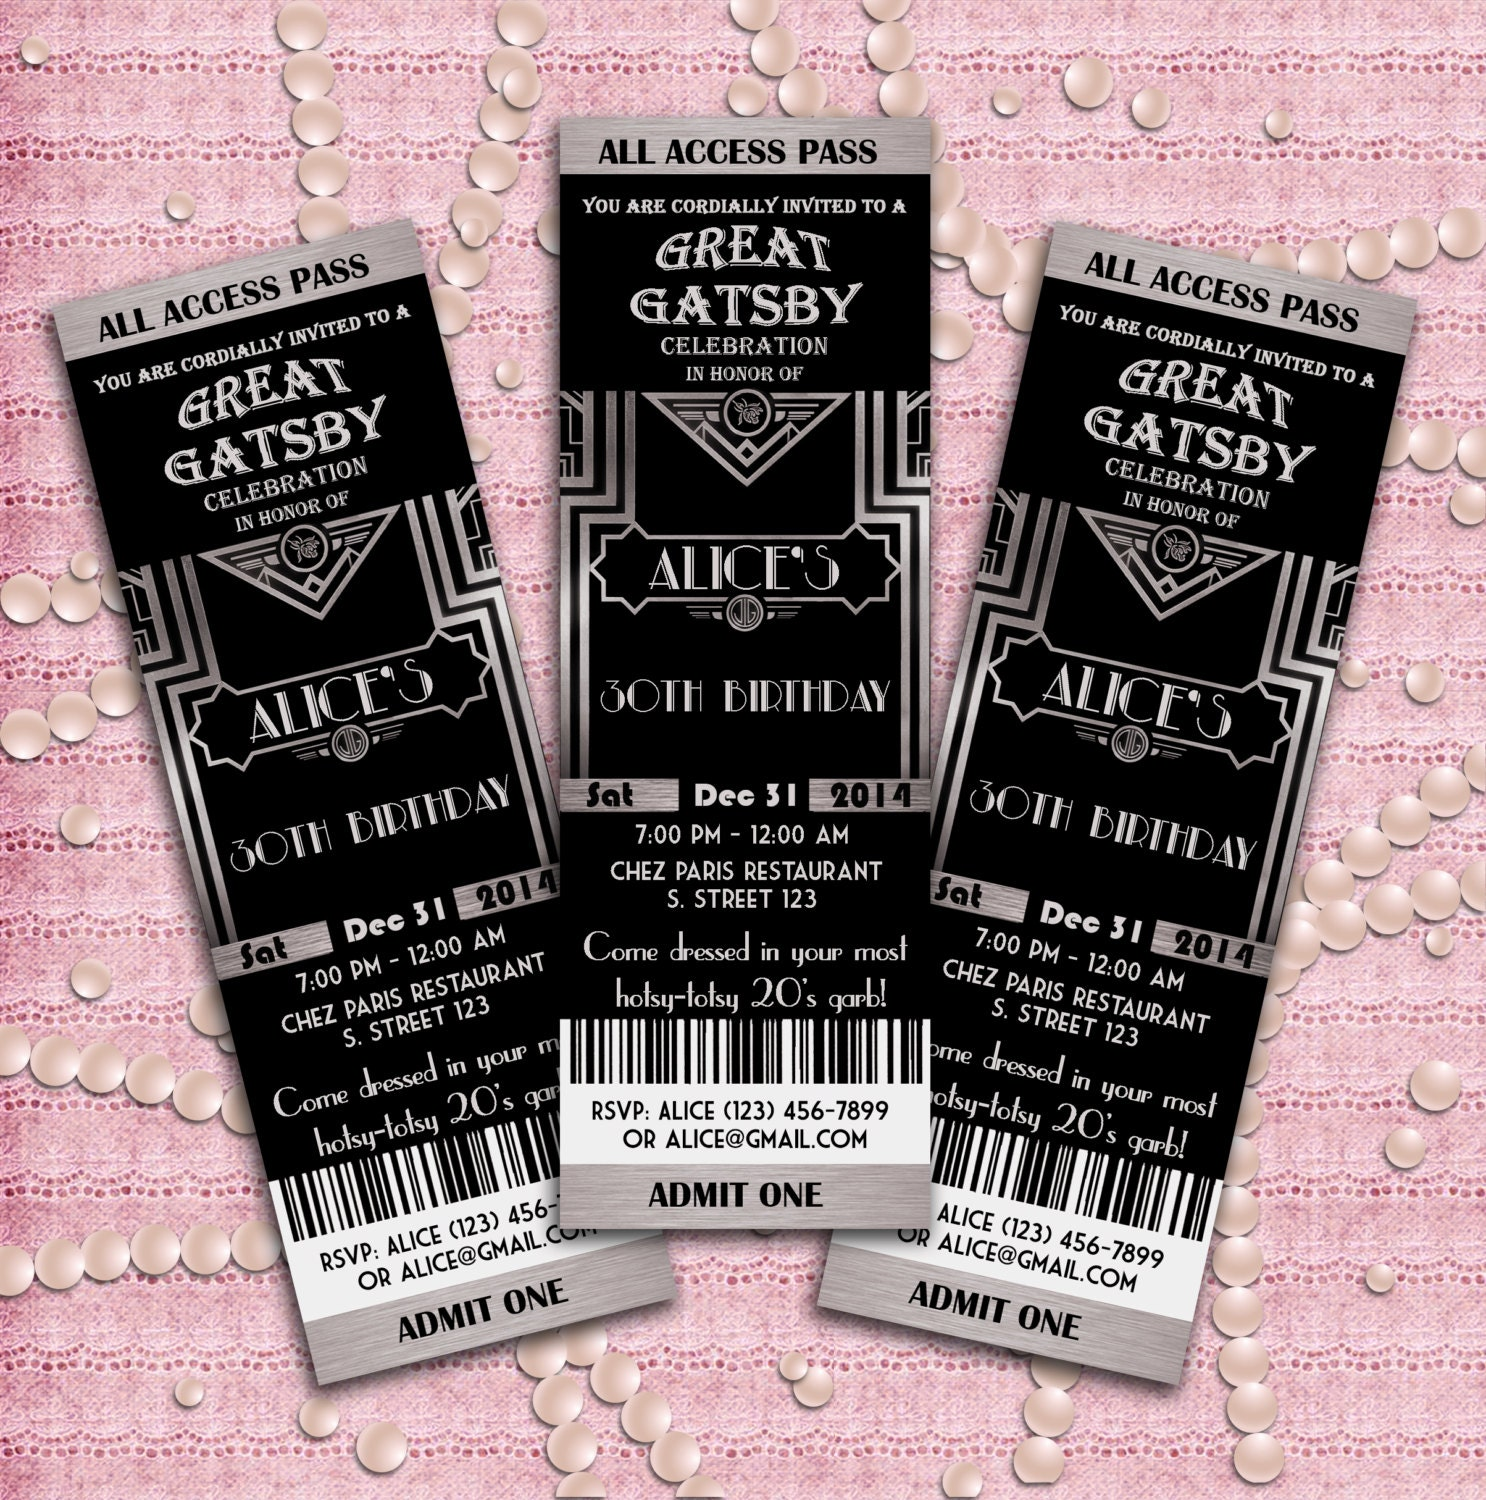 Party Ticket Template Staff Appraisal Form Template Consulting Il Fullxfull  Party Ticket Templatehtml Prom Tickets Design Prom Tickets Design  Prom Ticket Template